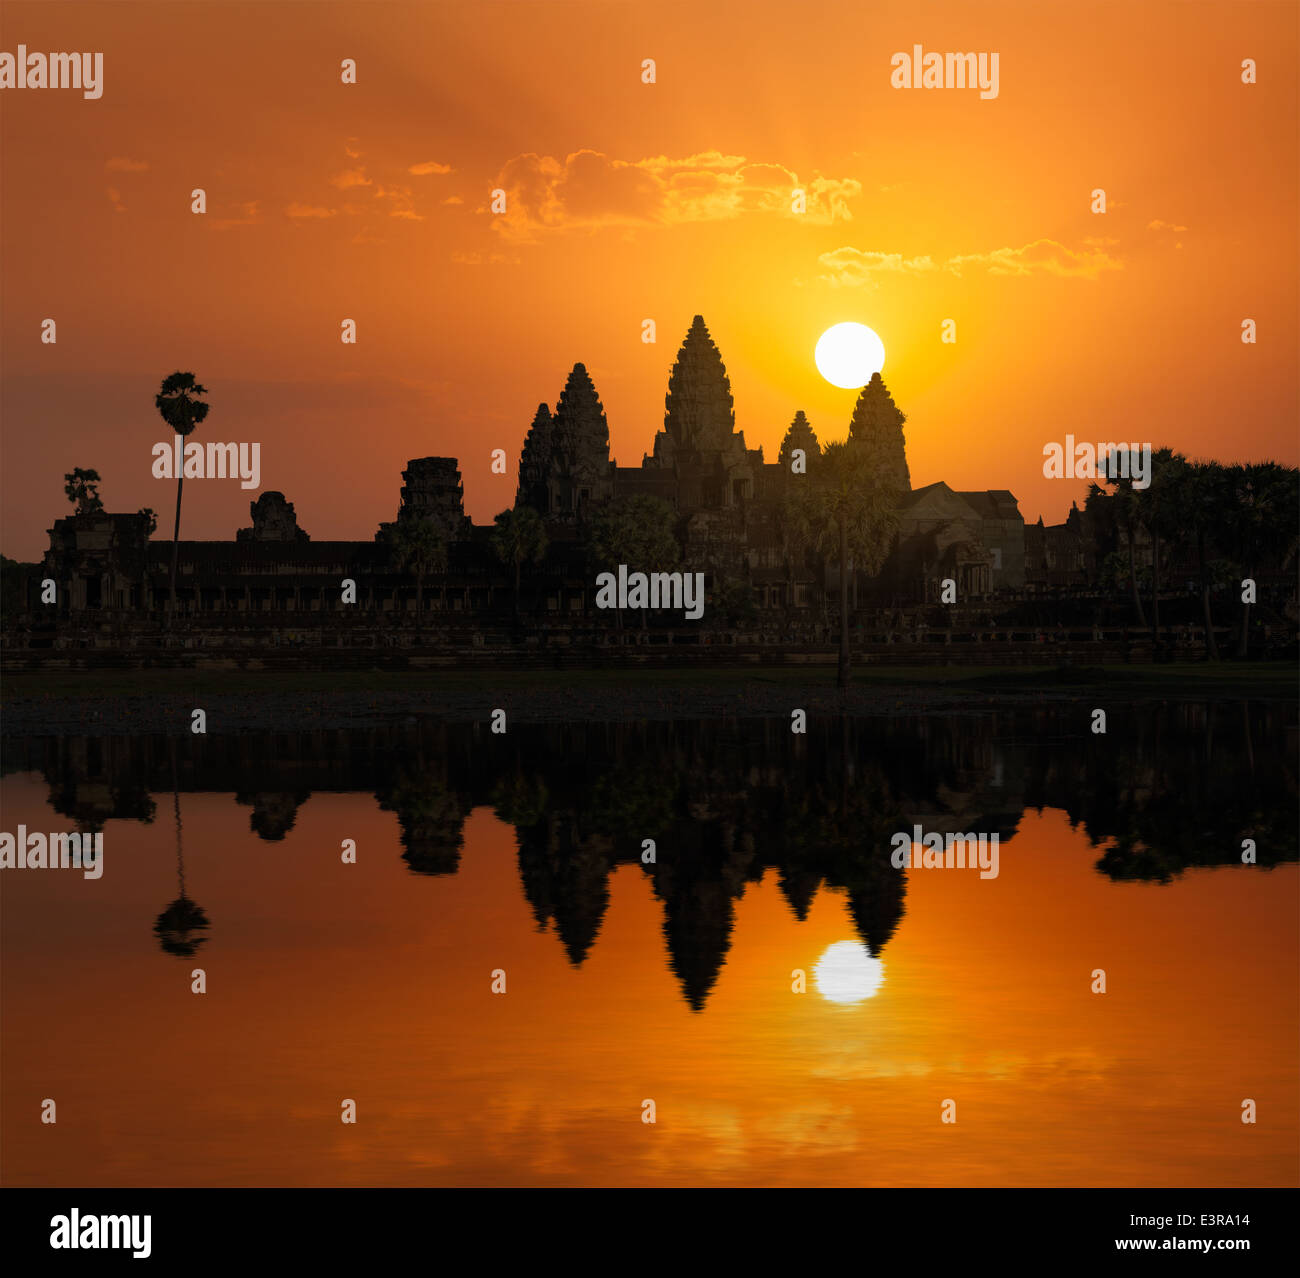 Cambodia landmark Angkor Wat with reflection in water on sunrise Stock Photo